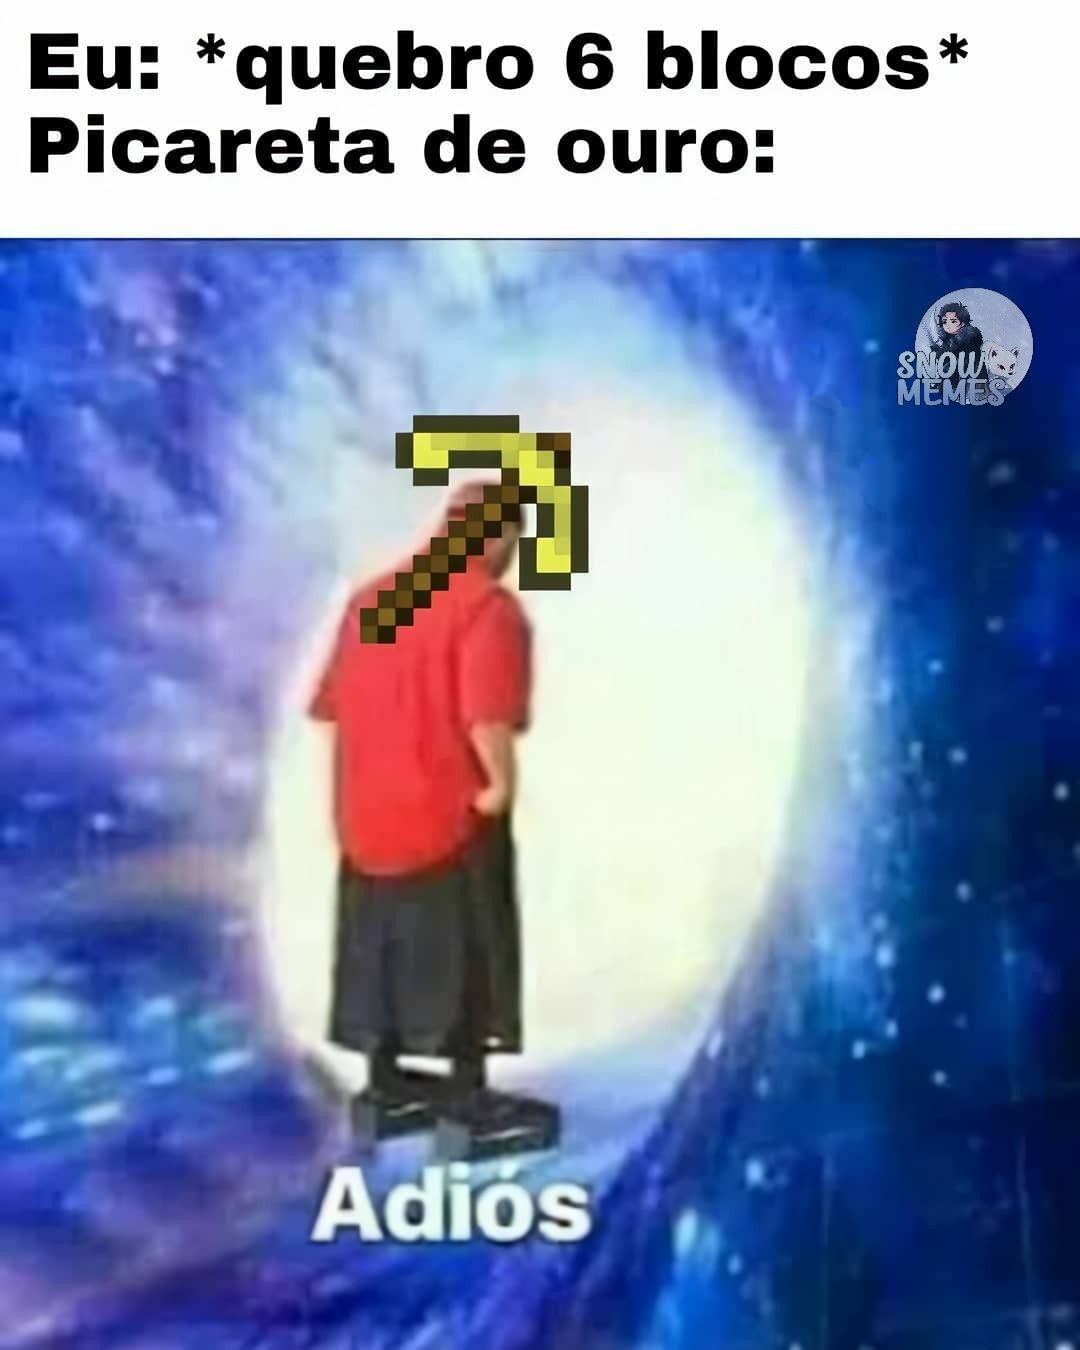 Pin By Anny On Memes Minecraft Memes Memes Funny Memes